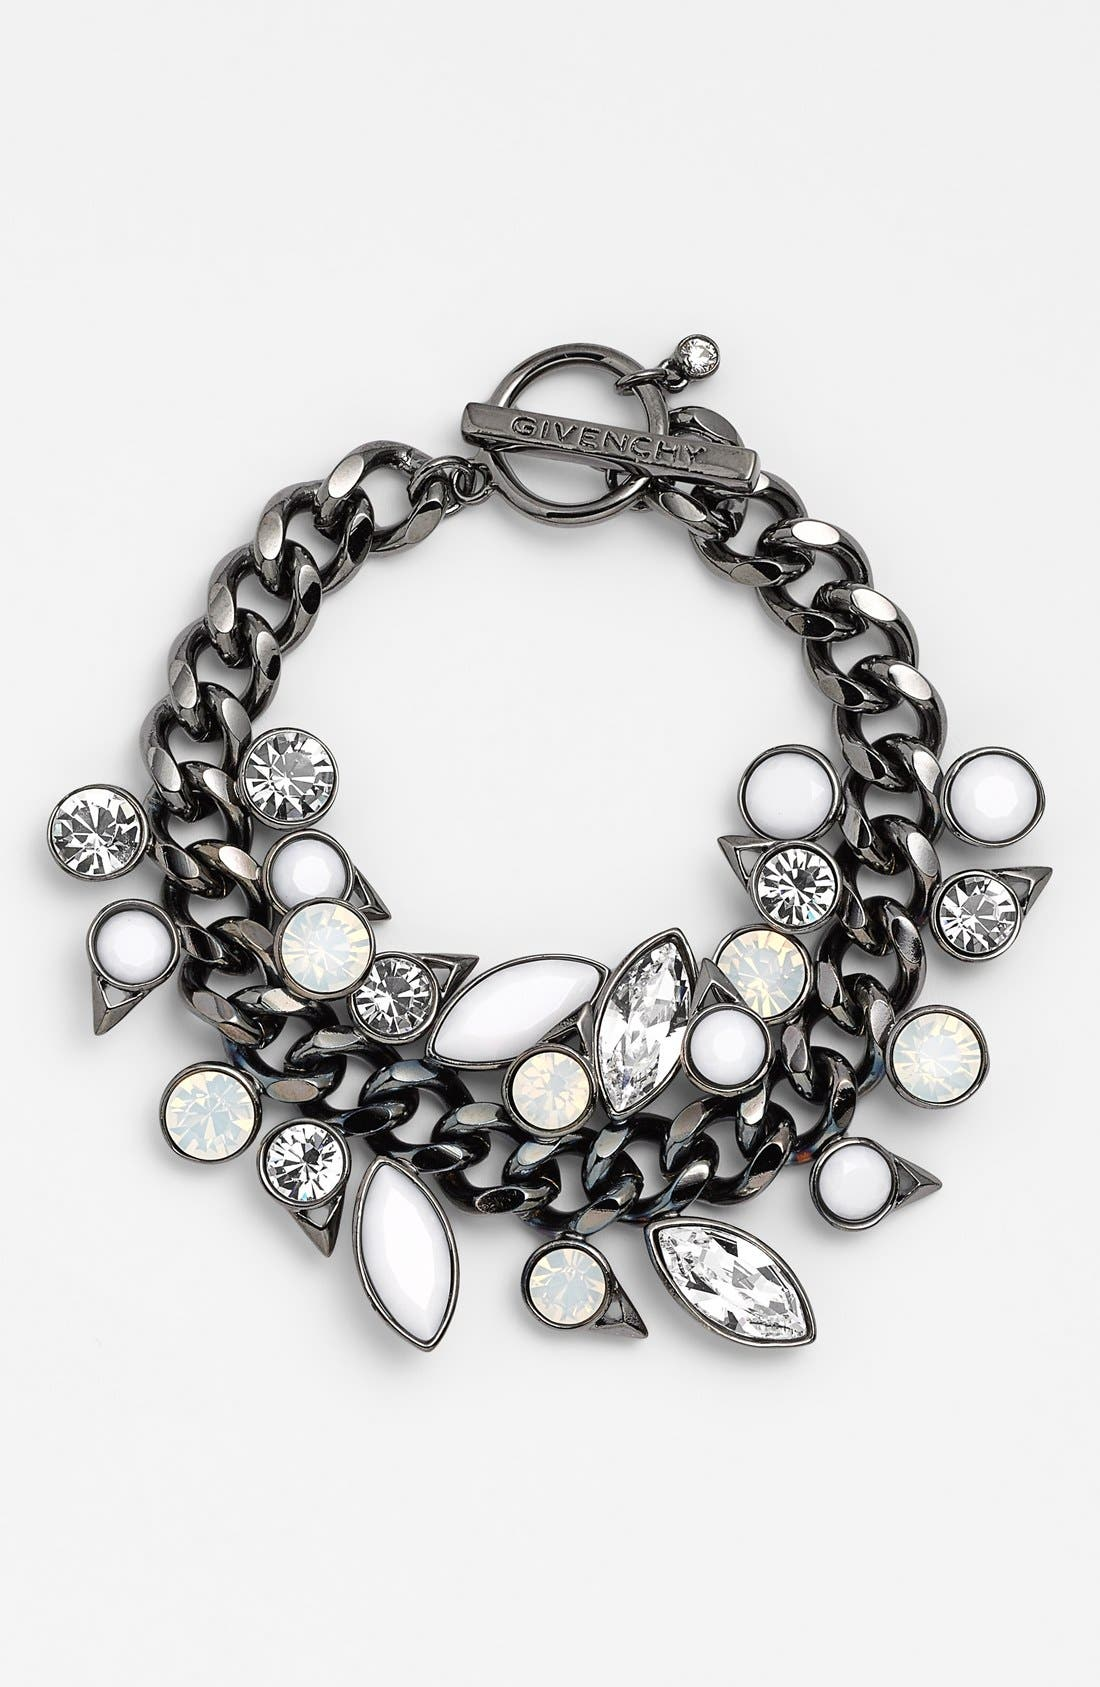 Alternate Image 1 Selected - Givenchy Toggle Bracelet